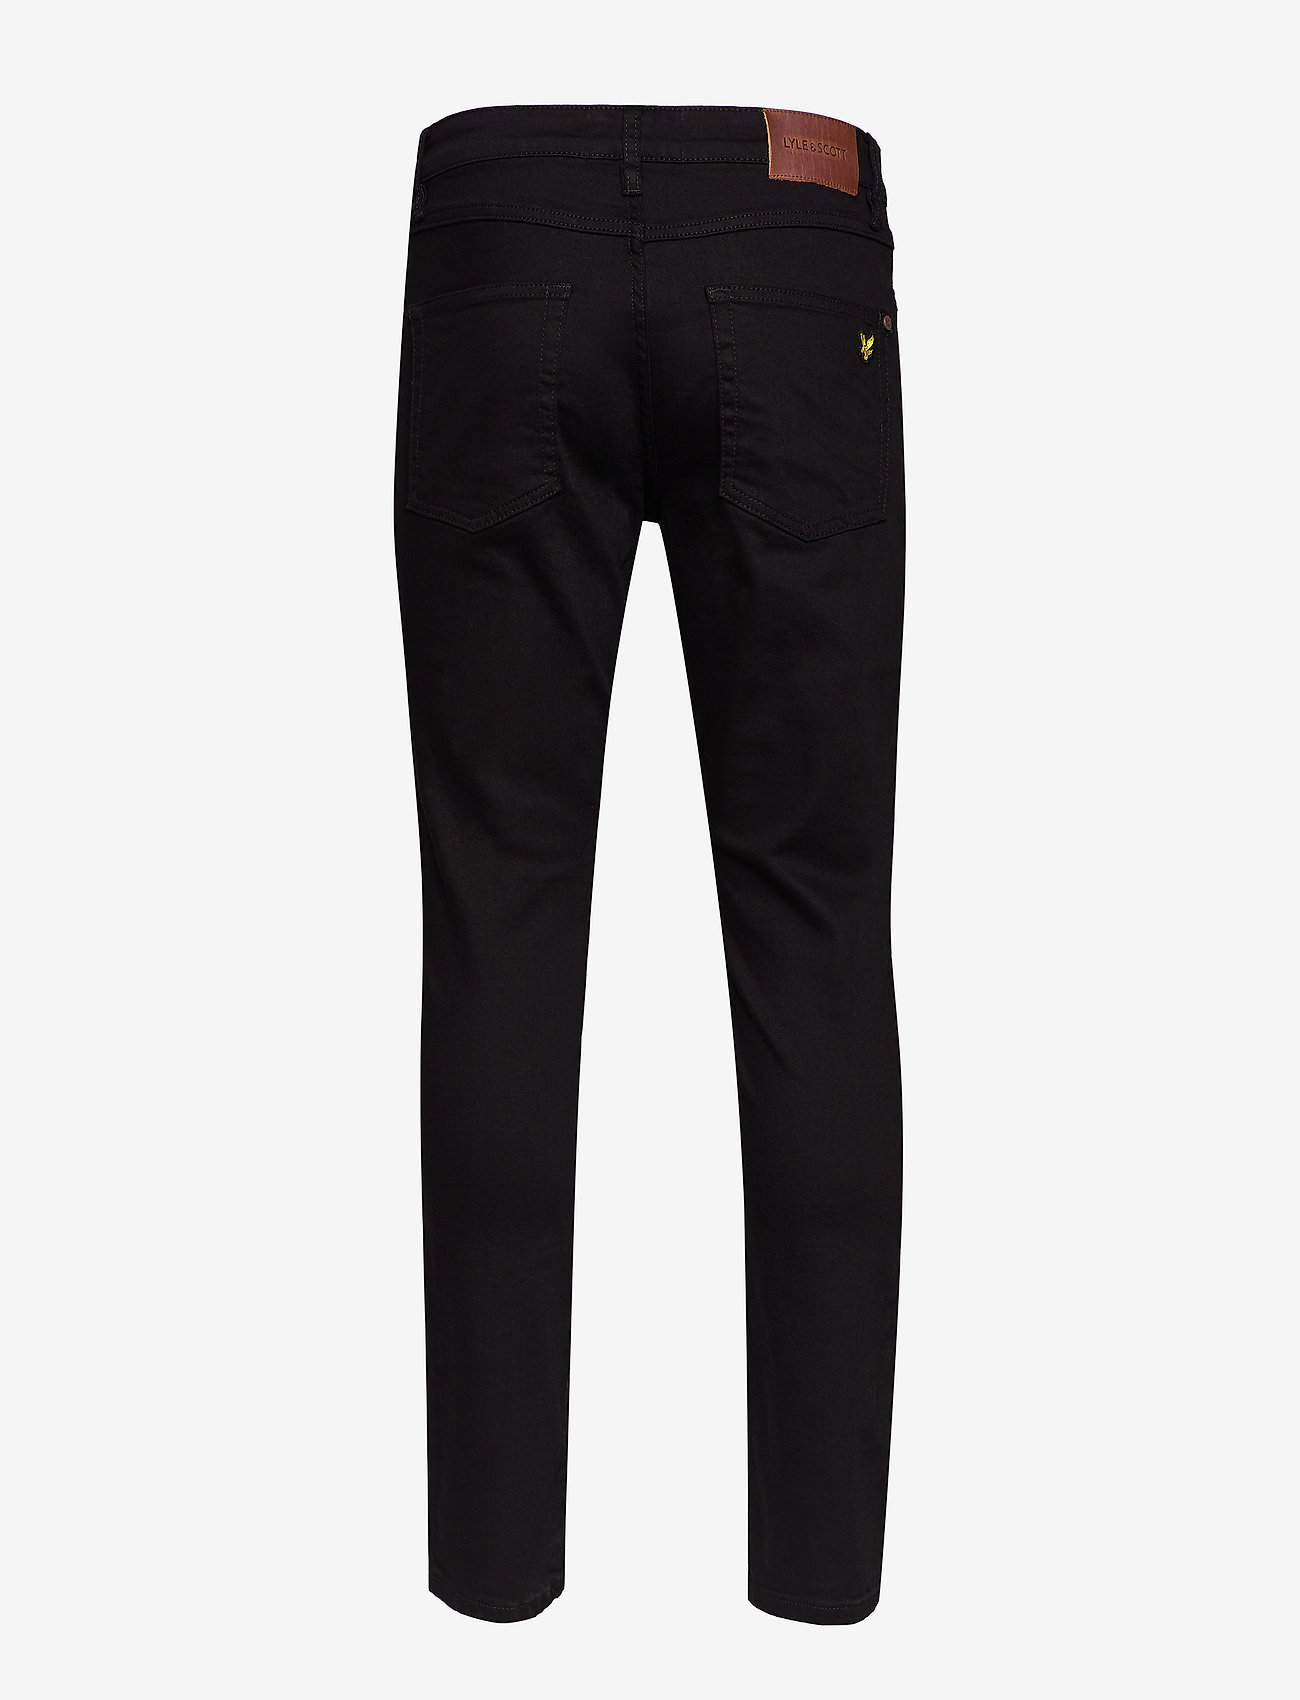 Lyle & Scott Slim Fit Jean - Jeans JET BLACK - Menn Klær